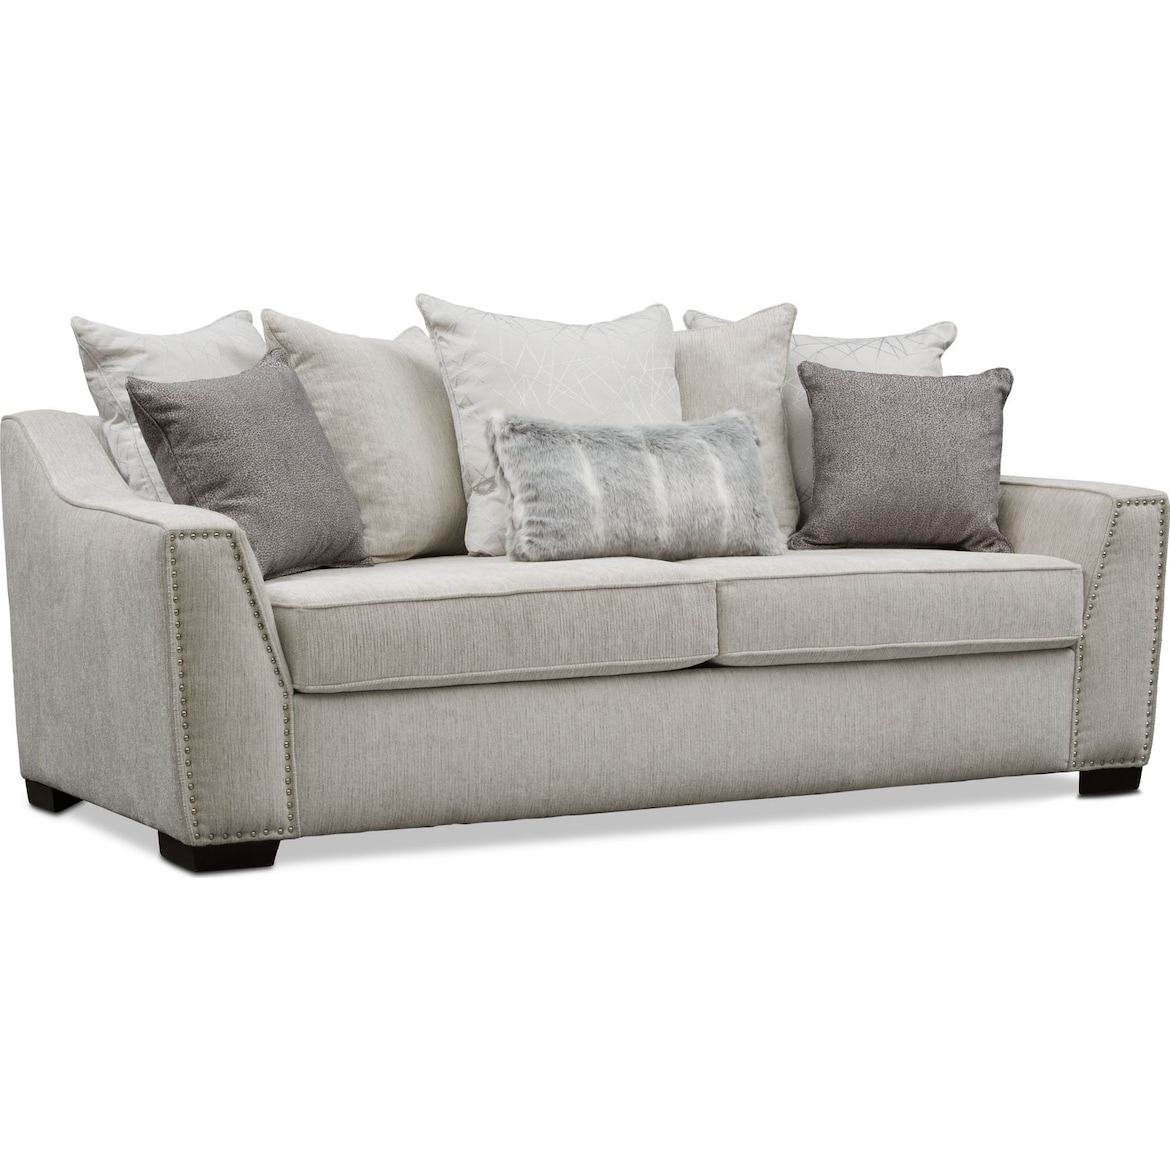 Roxie Sofa - Gray | Value City Furniture and Mattresses